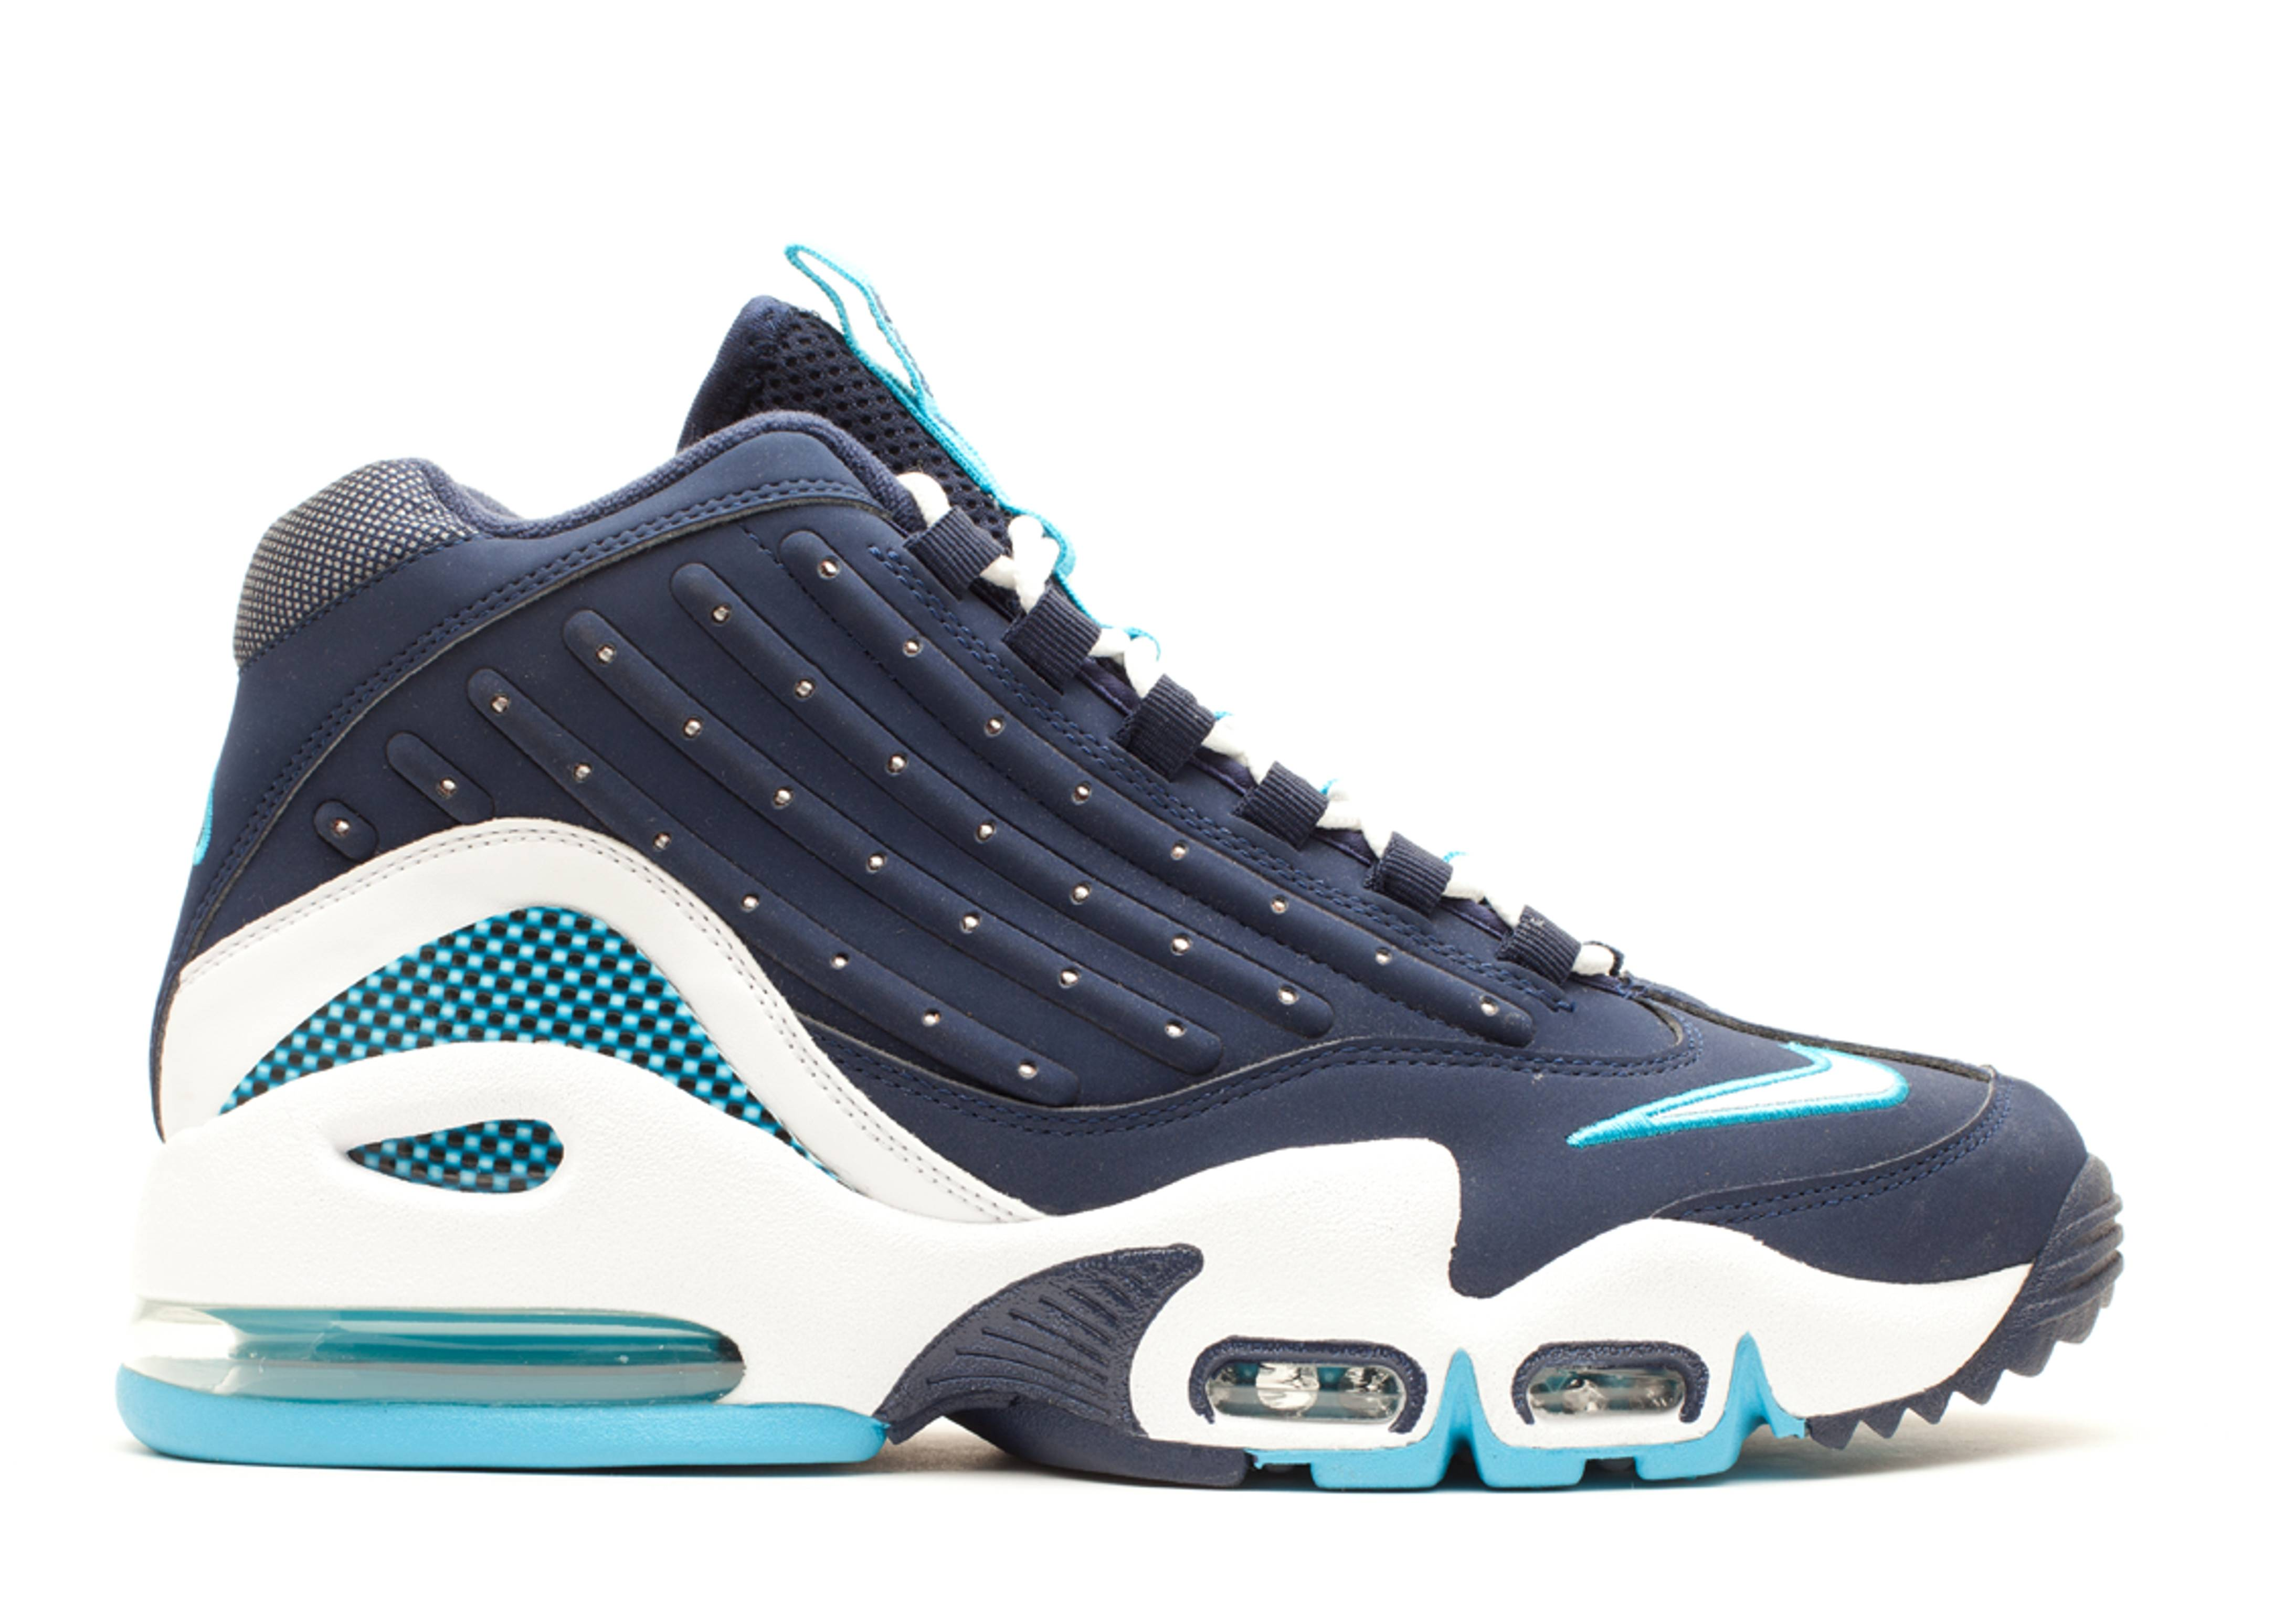 435dad5db3 Air Griffey Max 2 - Nike - 442171 400 - midnight navy/white-chlorine ...